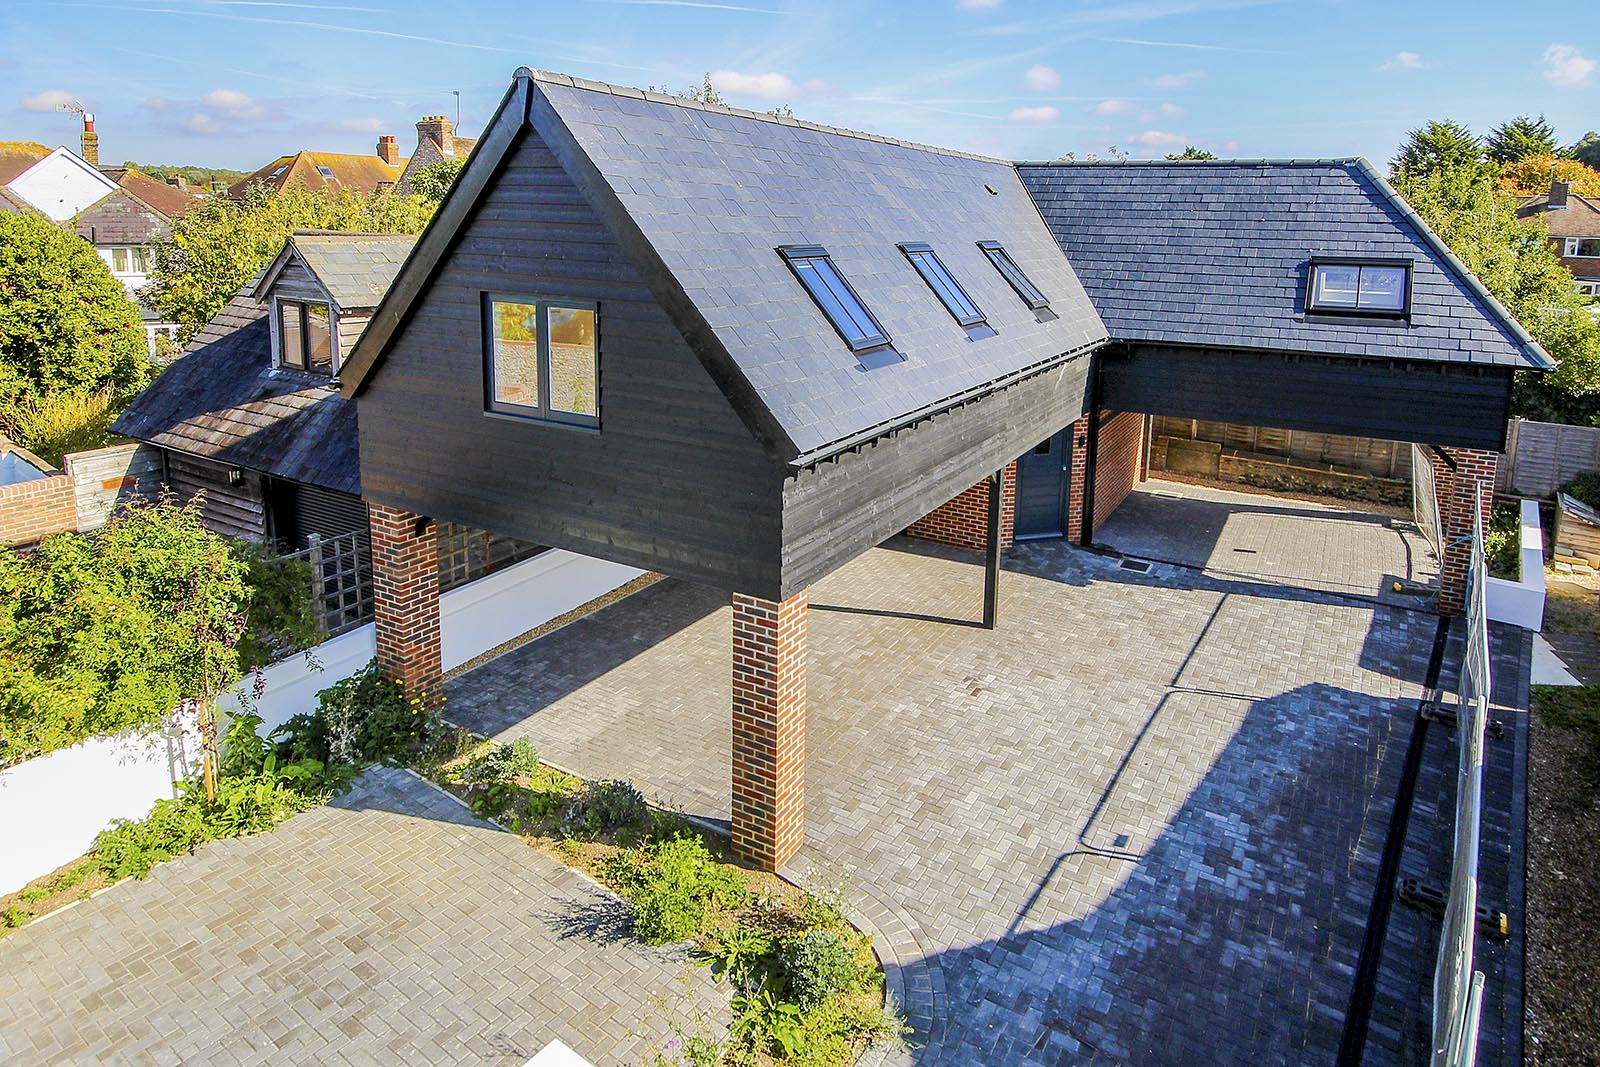 2 bed house for sale in The Cottrells, Angmering, BN16